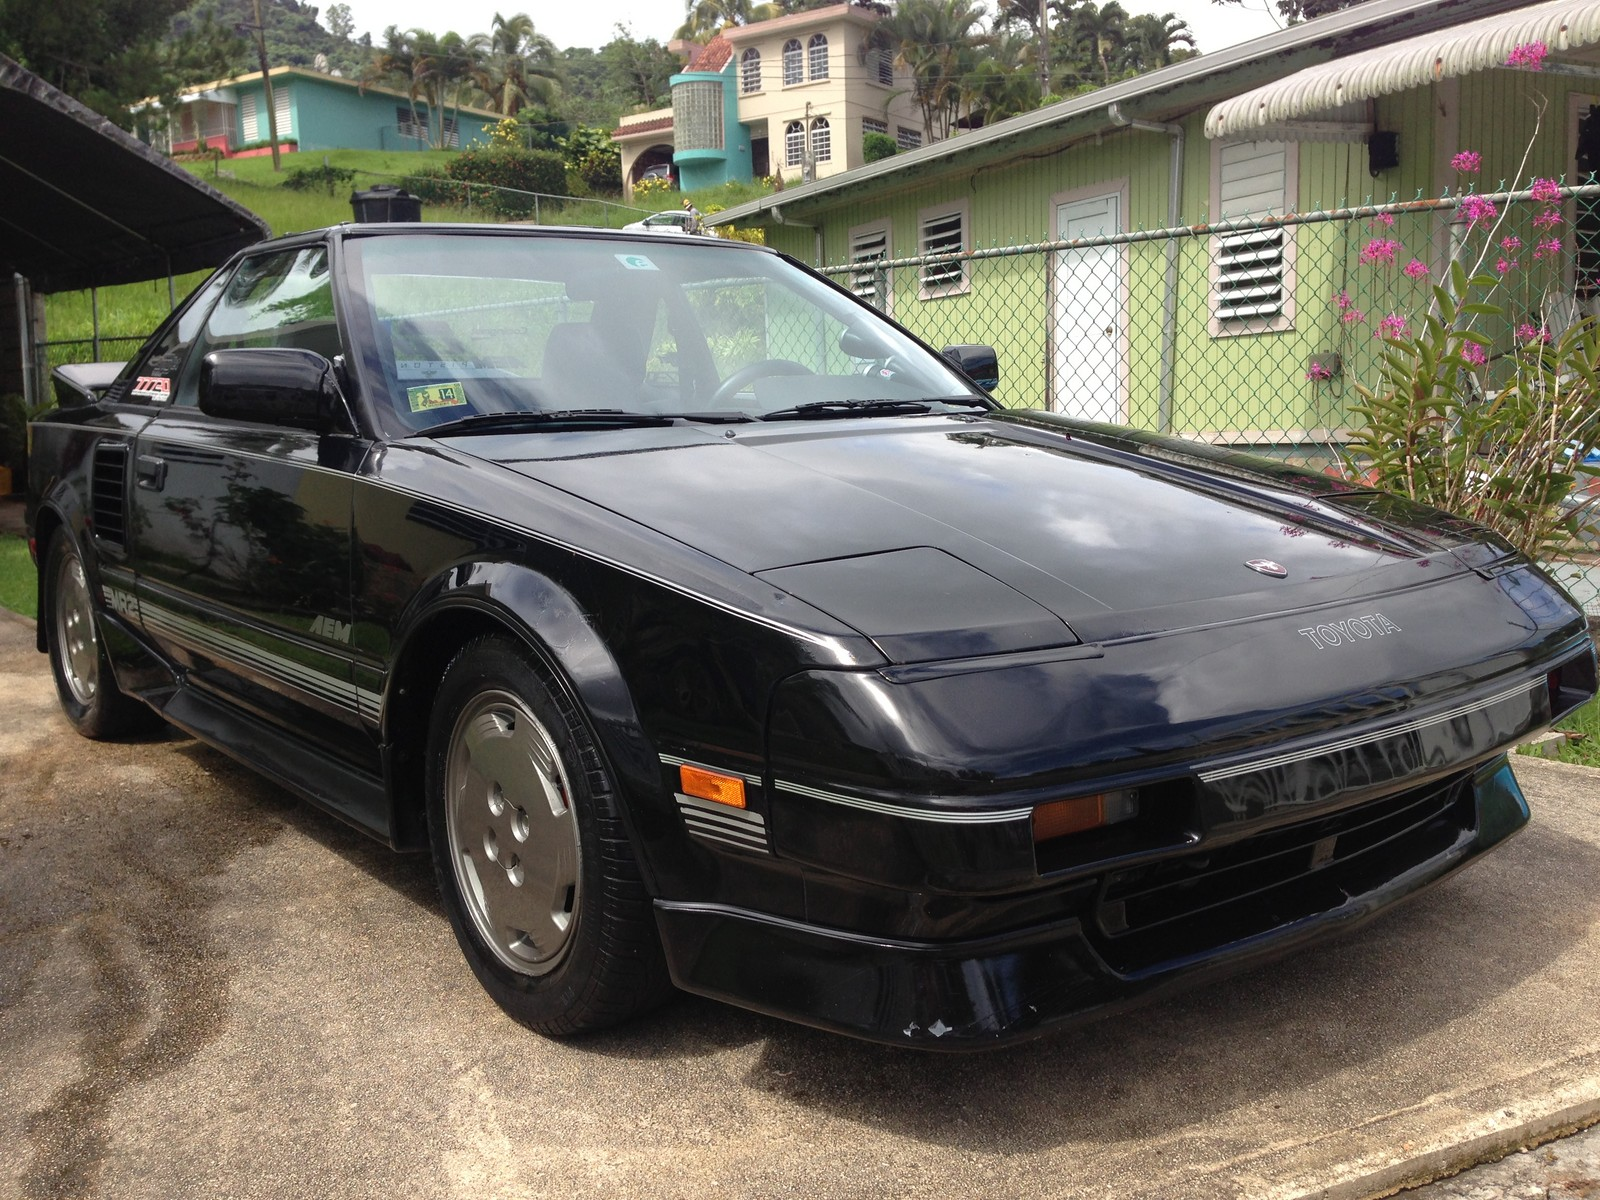 Black 1986 Toyota MR2 AW11